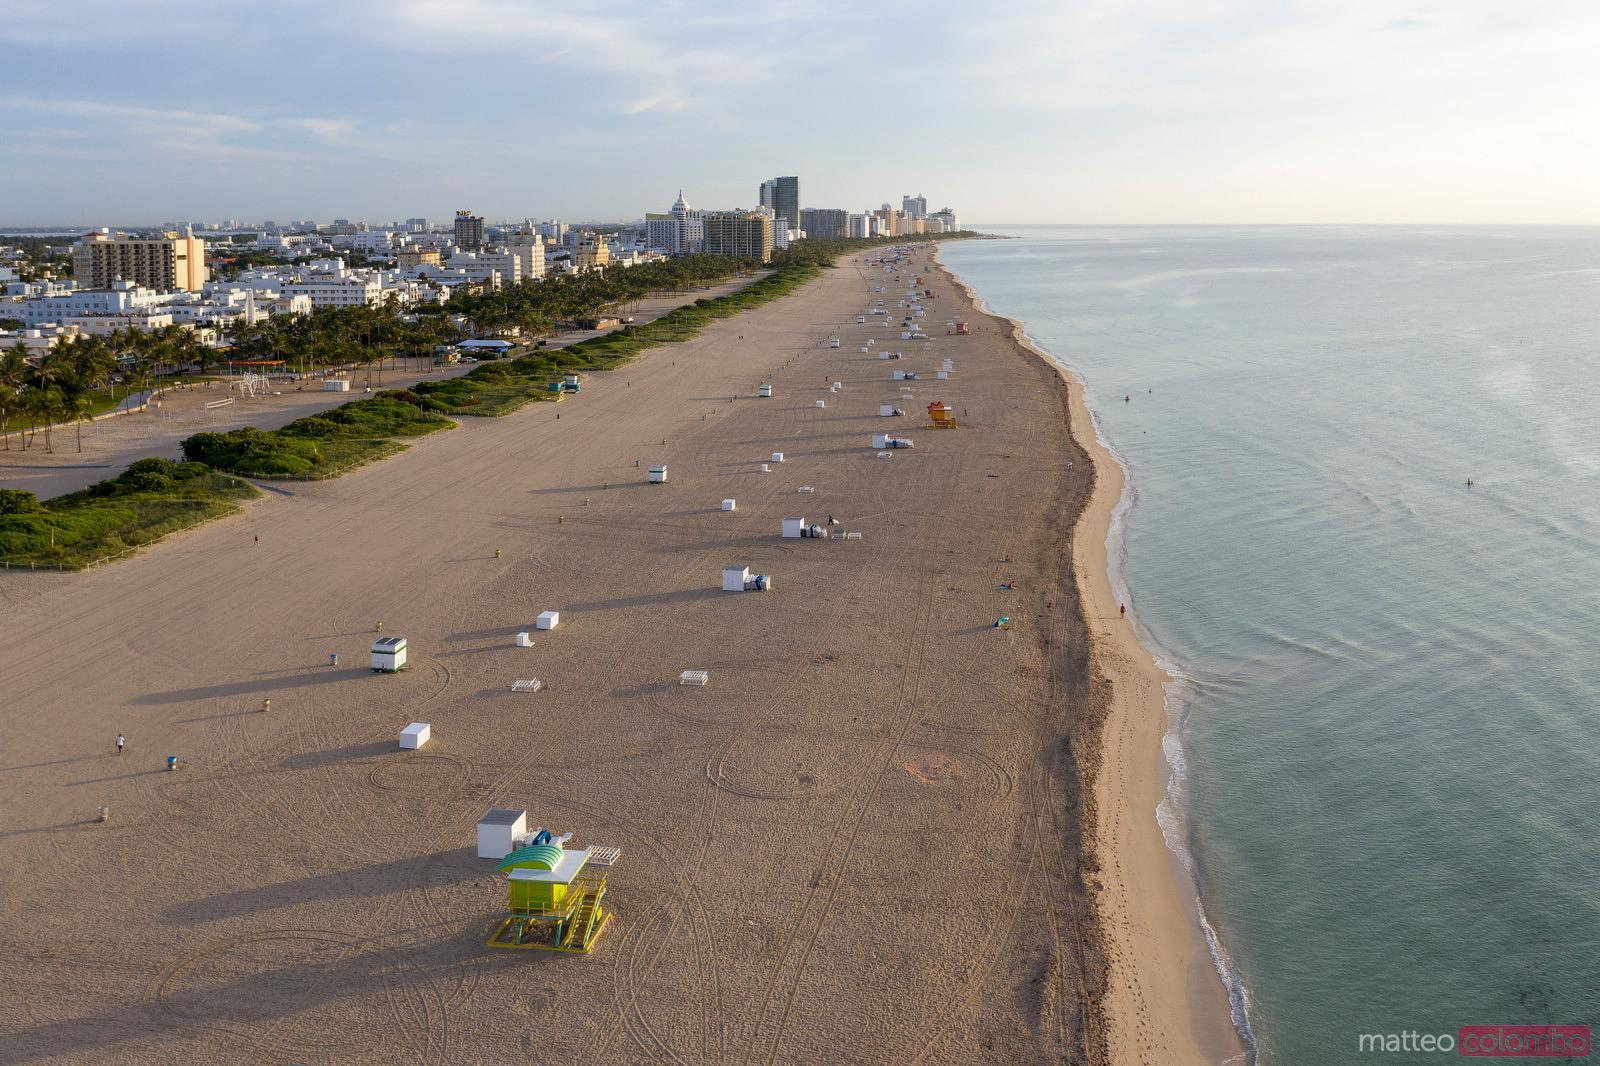 Aerial view of lifeguard cabin and South beach, Miami